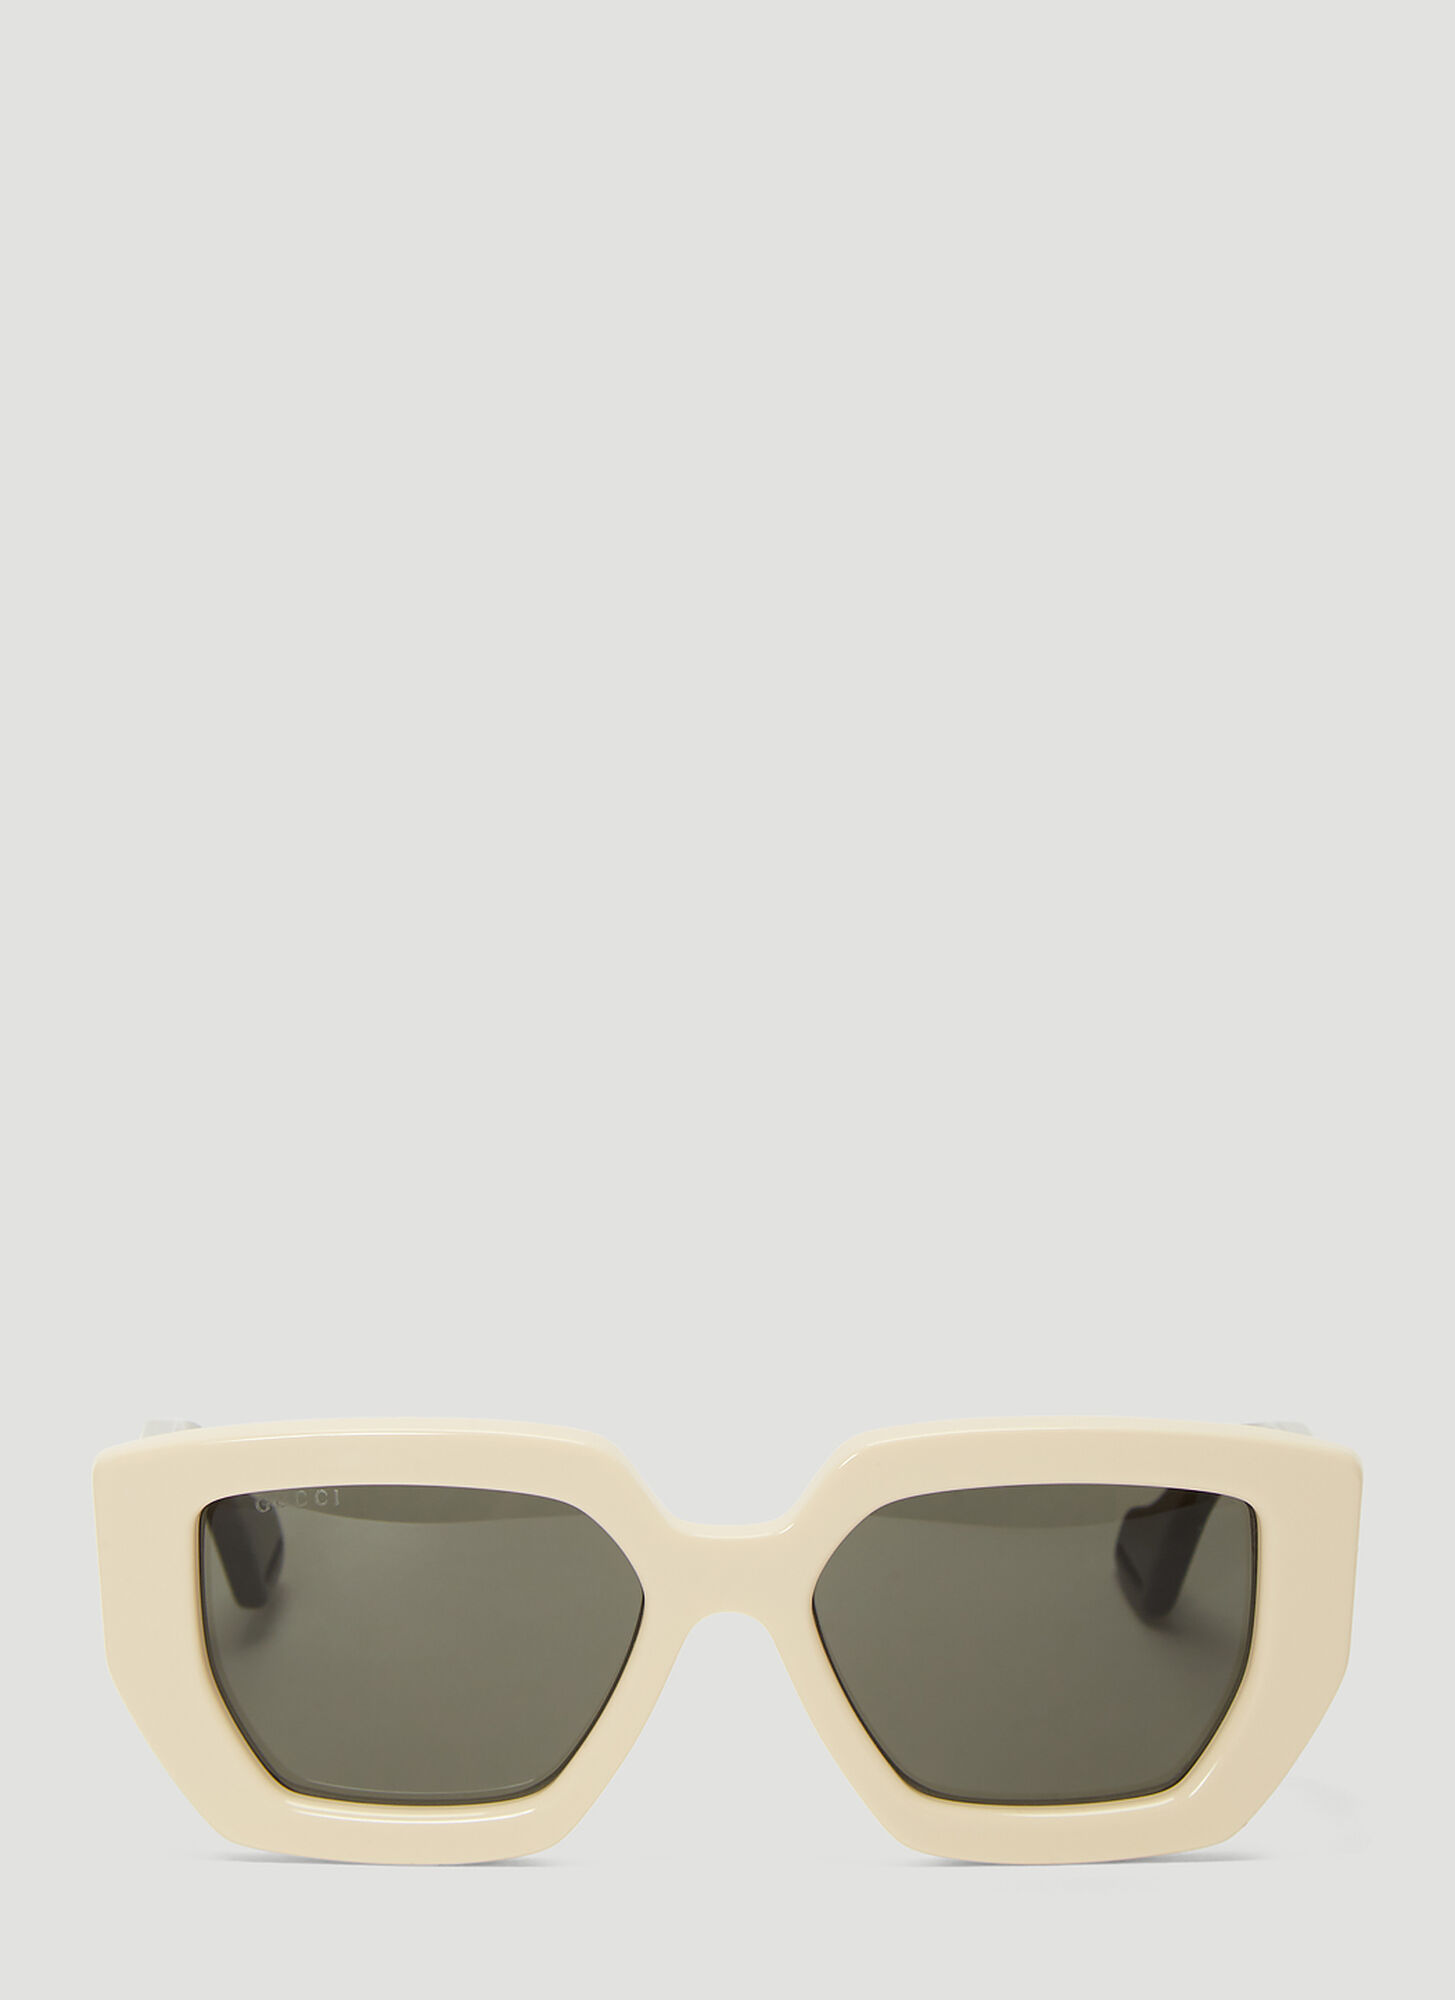 Gucci Square Acetate Sunglasses in White